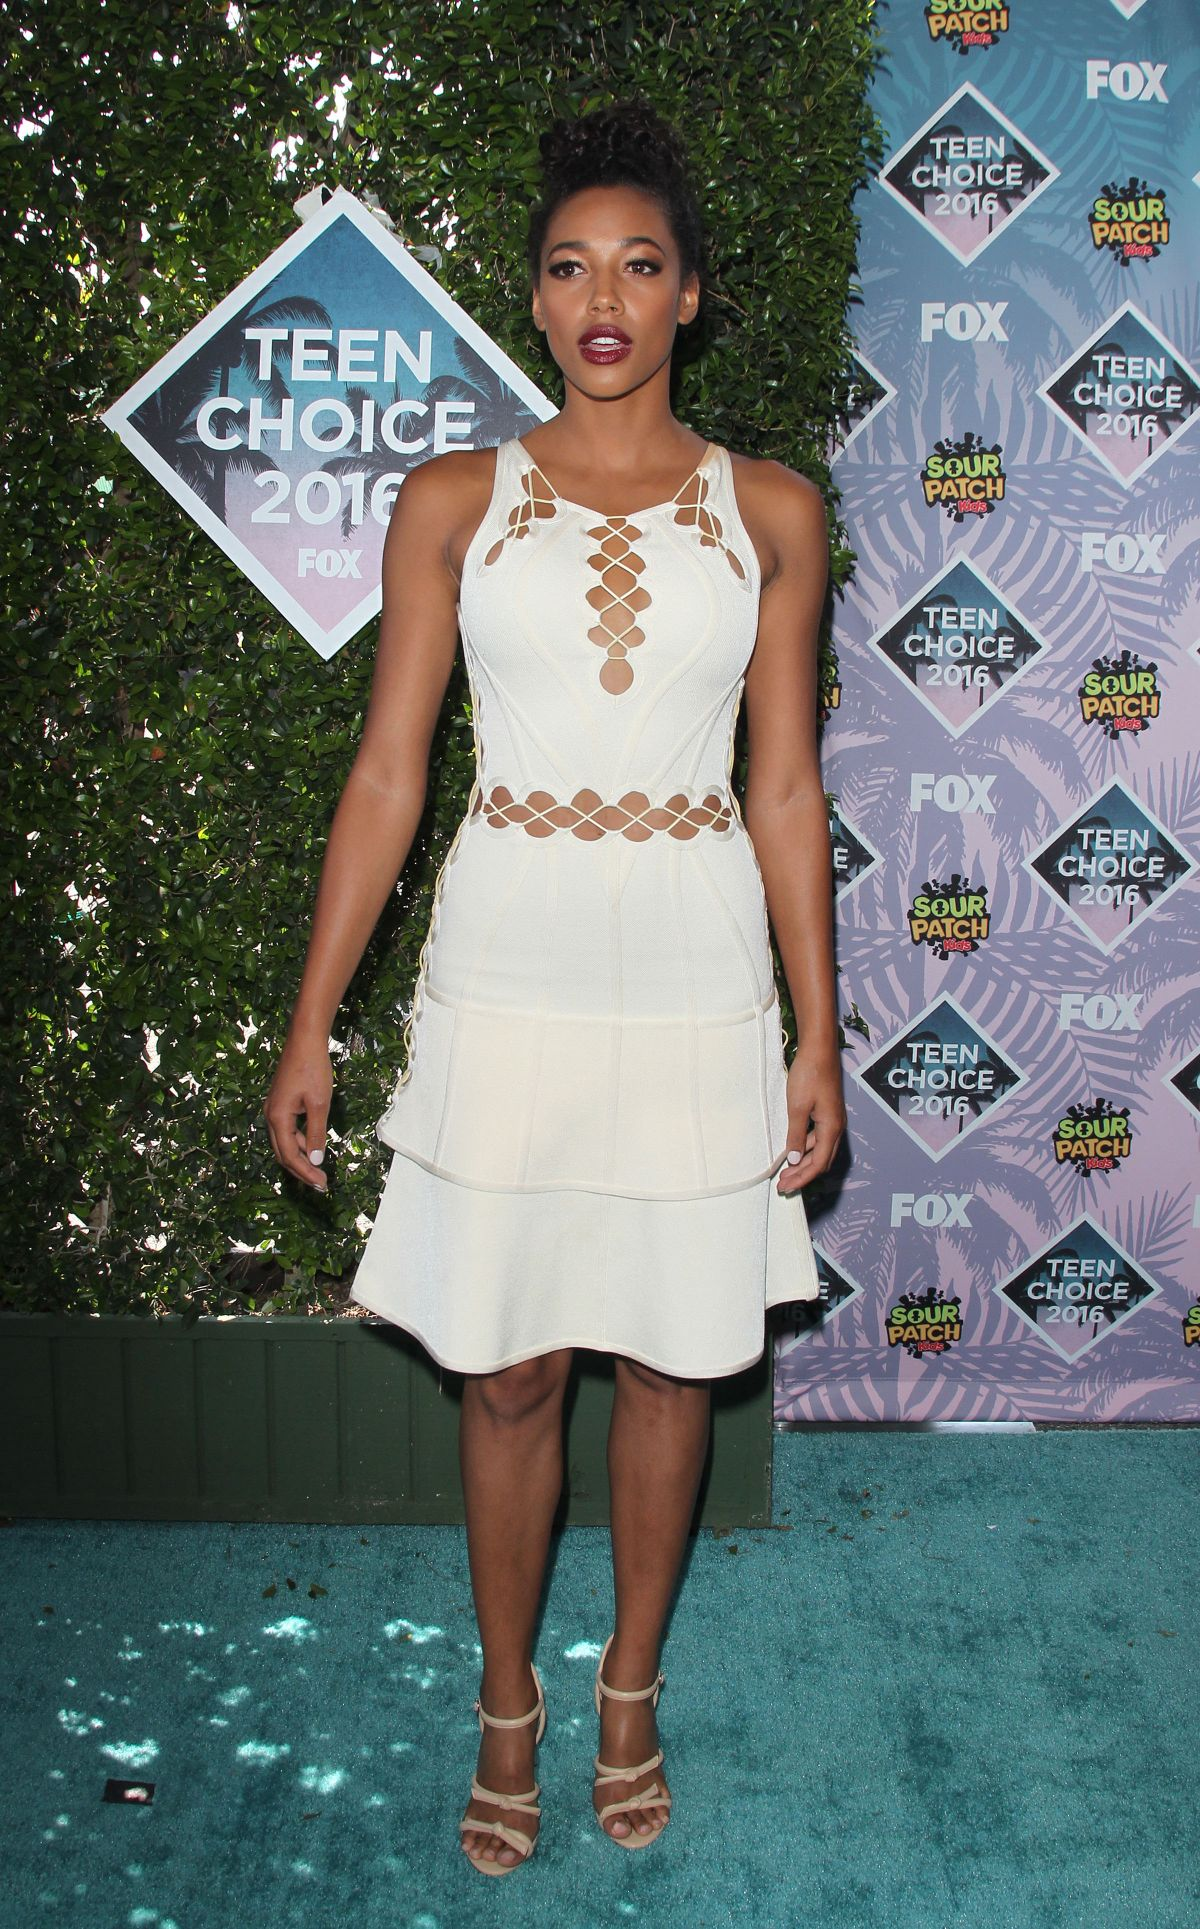 KYLIE BUNBURY at Teen Choice Awards 2016 in Inglewood 07/31/2016